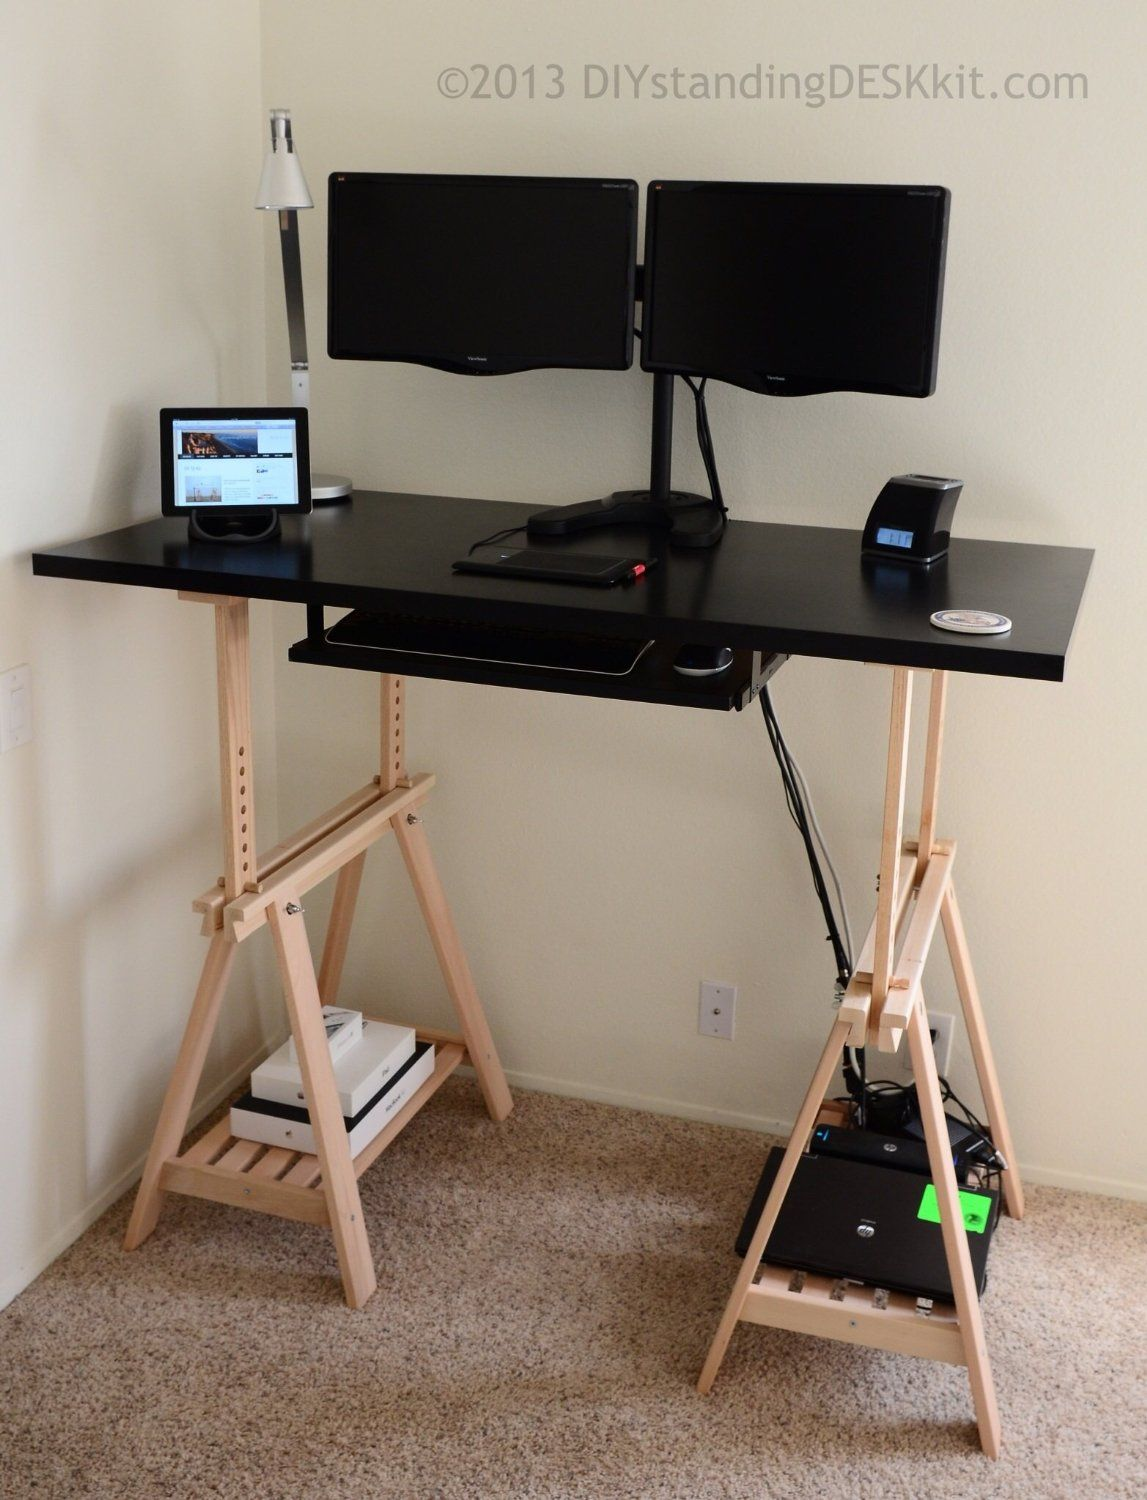 Diy Standing Desk Kit The Adjule Hight Stand Up Conversion Co Uk Kitchen Home